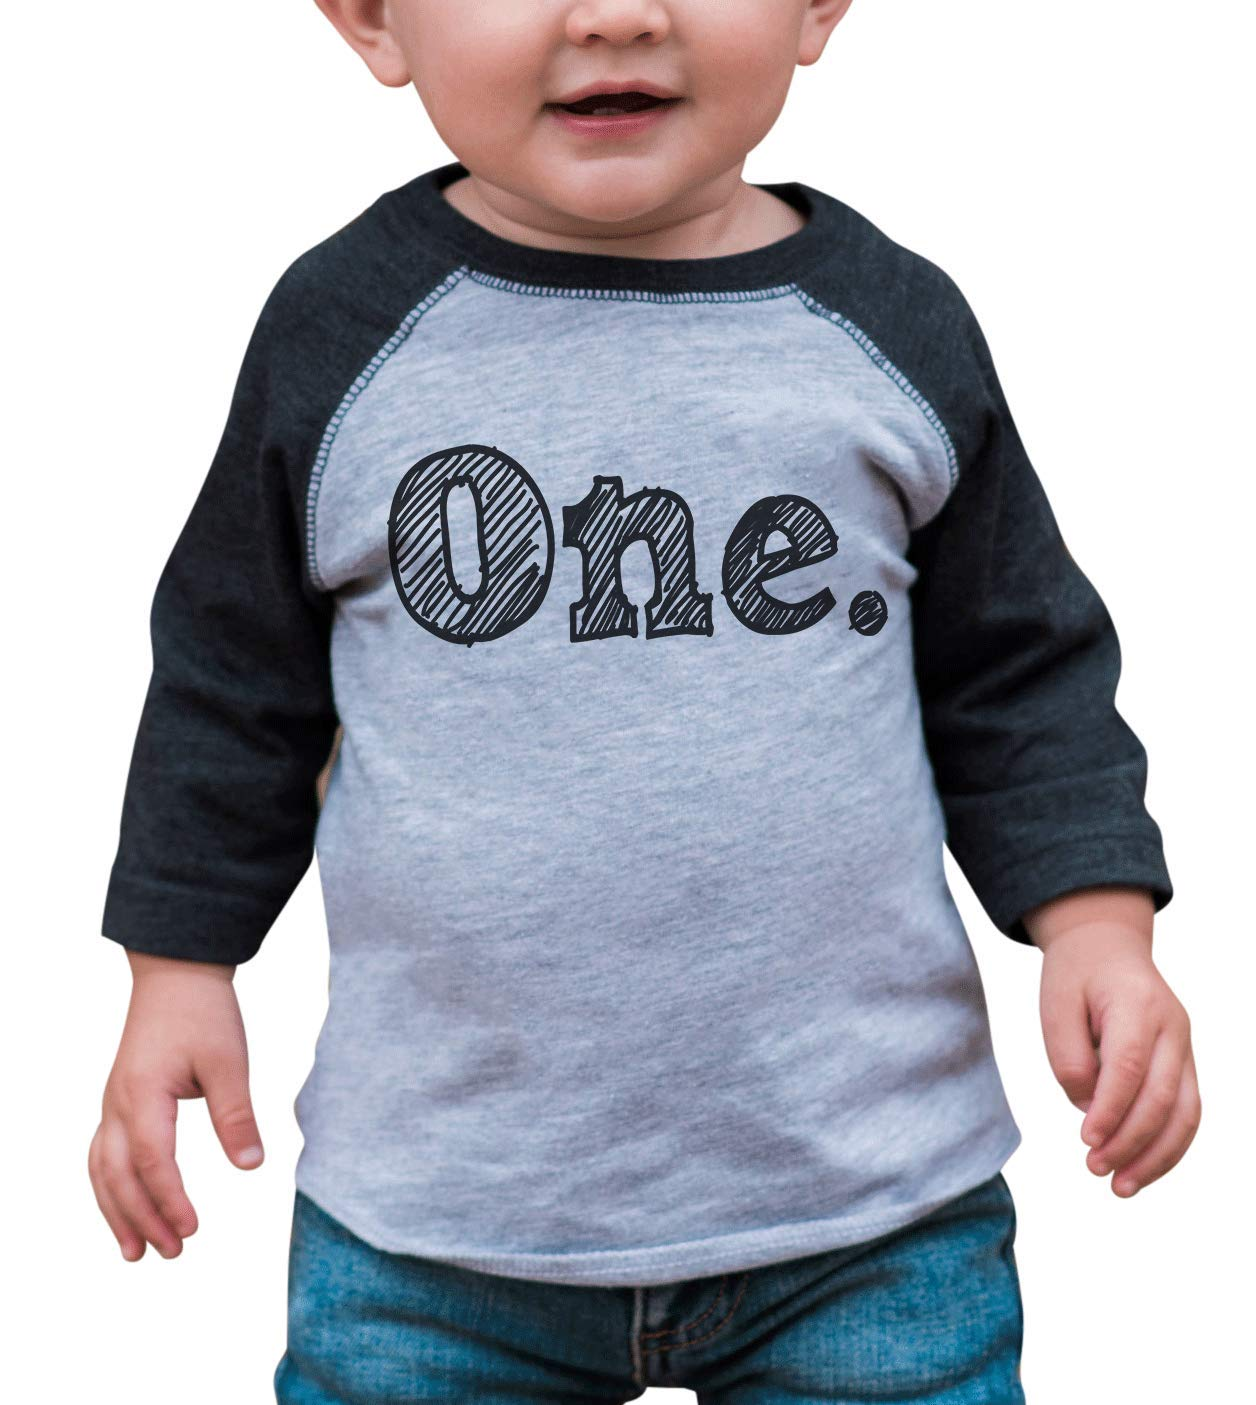 7 ate 9 Apparel Boy's First Birthday One Vintage Baseball Tee 12 Months Grey and Black by 7 ate 9 Apparel